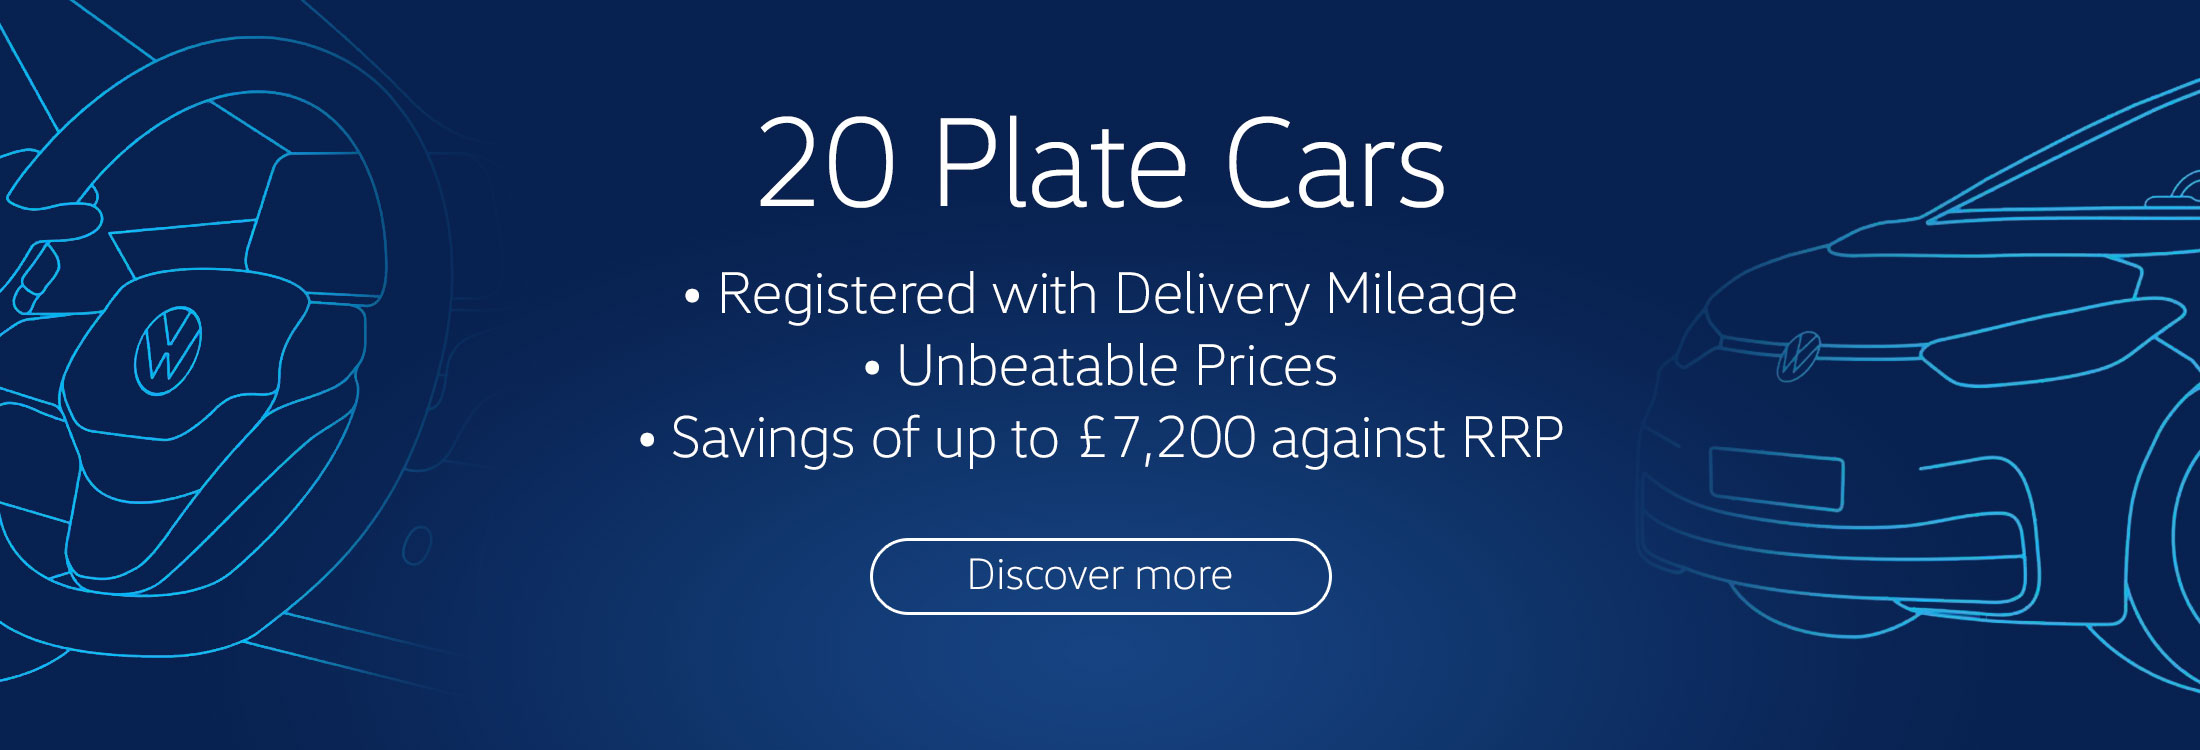 20 Plate Offers Delivery Mileage